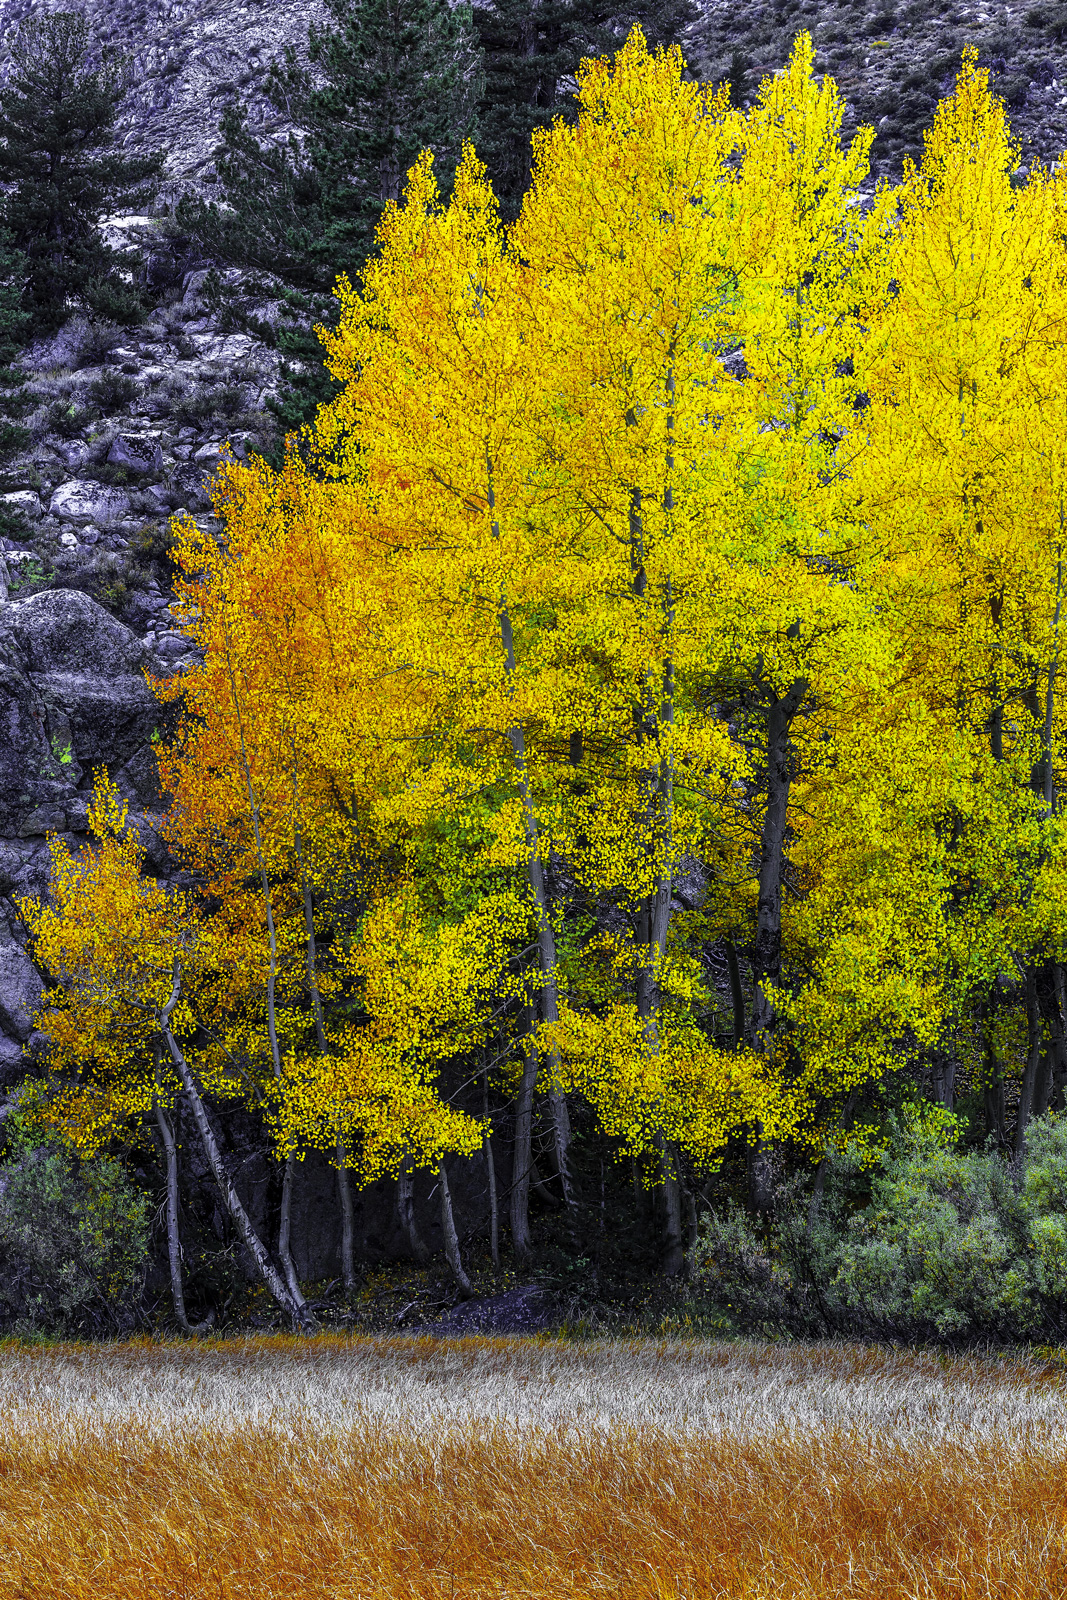 A stand of Quaking Aspens adorned in peak fall color rests beneath the granite walls of California's Eastern Sierra Nevada, in this view looking across a mountain marsh.